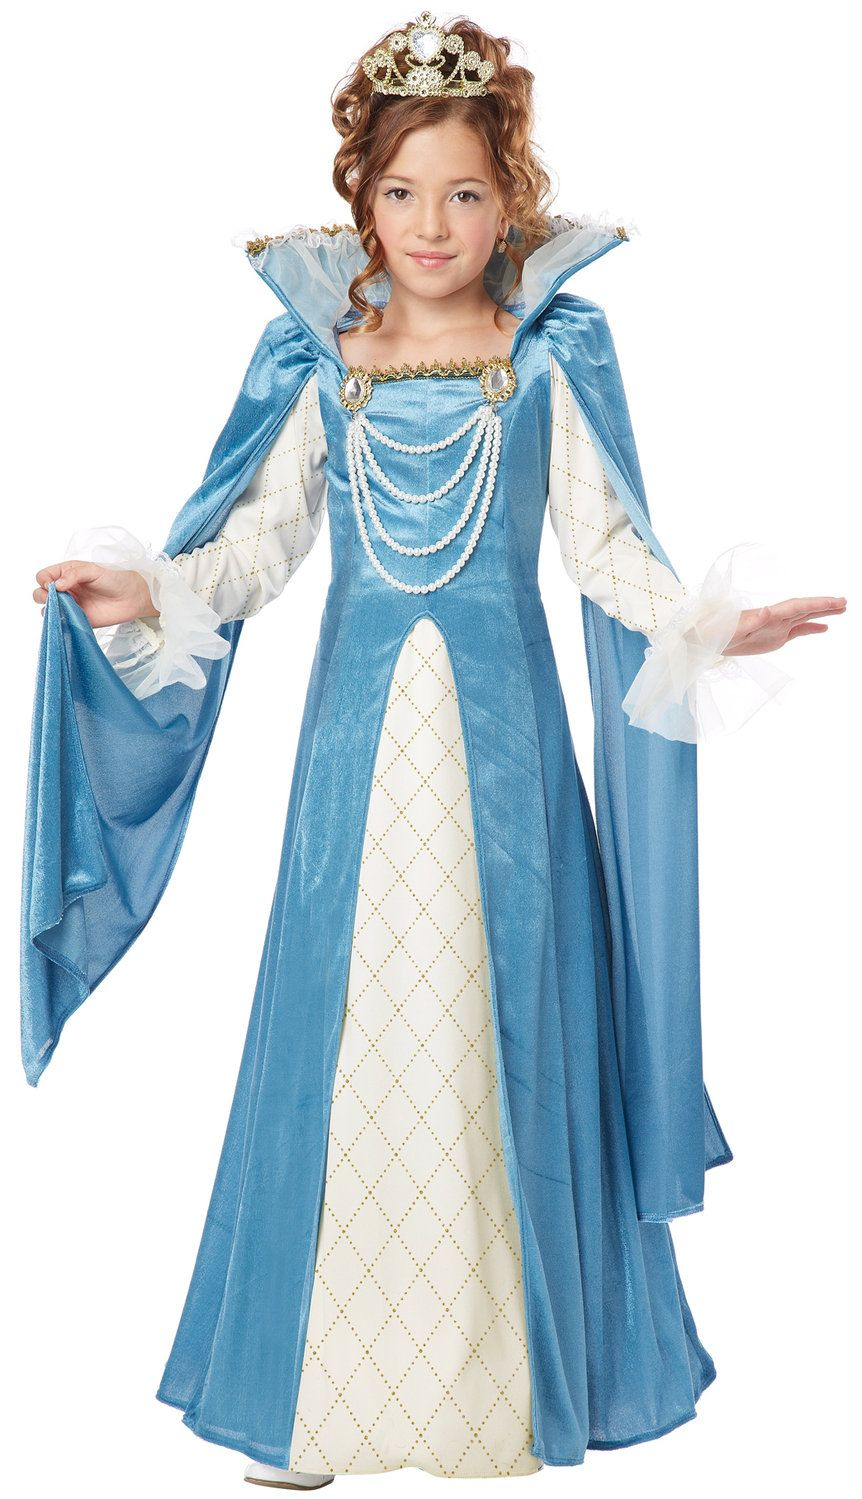 Halloween Costumes For Girls Age 11 12.Homemade Halloween Costumes For Girls Age 10 12 Home Queen